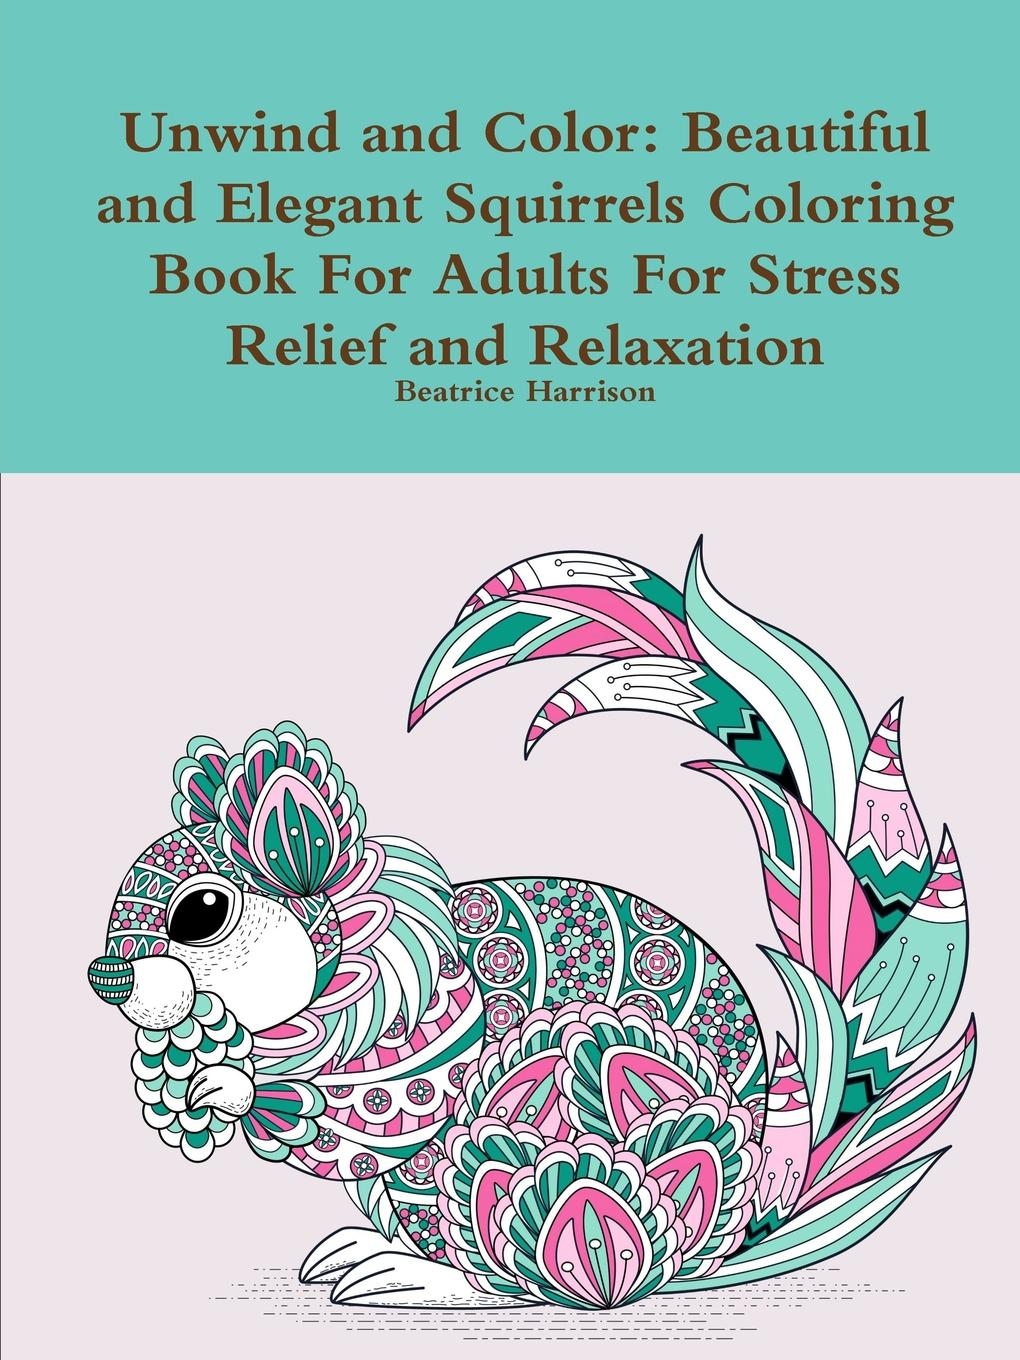 Beatrice Harrison Unwind and Color. Beautiful and Elegant Squirrels Coloring Book For Adults For Stress Relief and Relaxation colorful hexagon fidget spinner adhd stress relief toy relaxation gift for adults